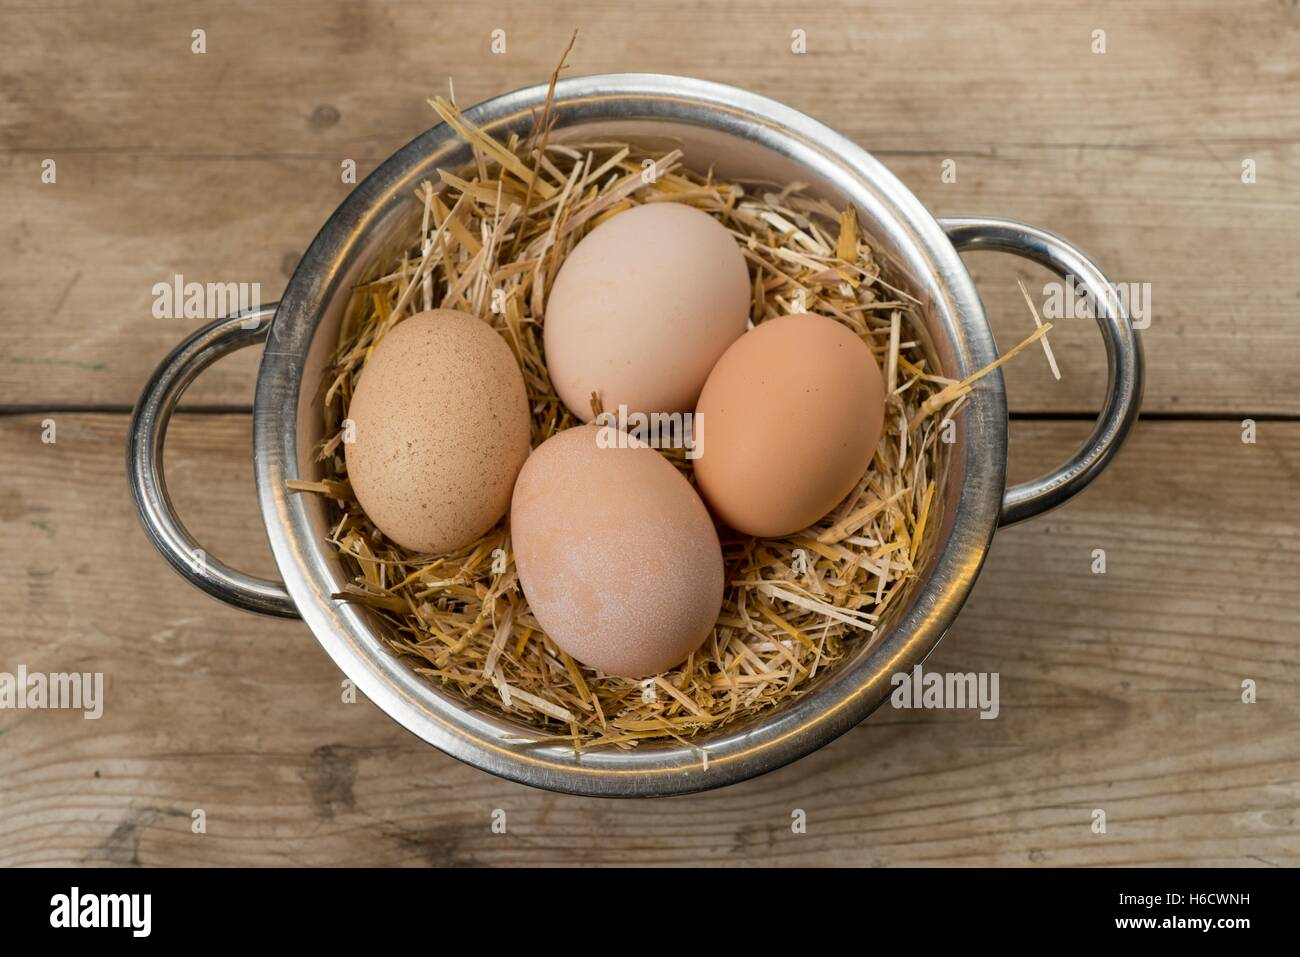 Freash home produced free range chickens eggs. - Stock Image